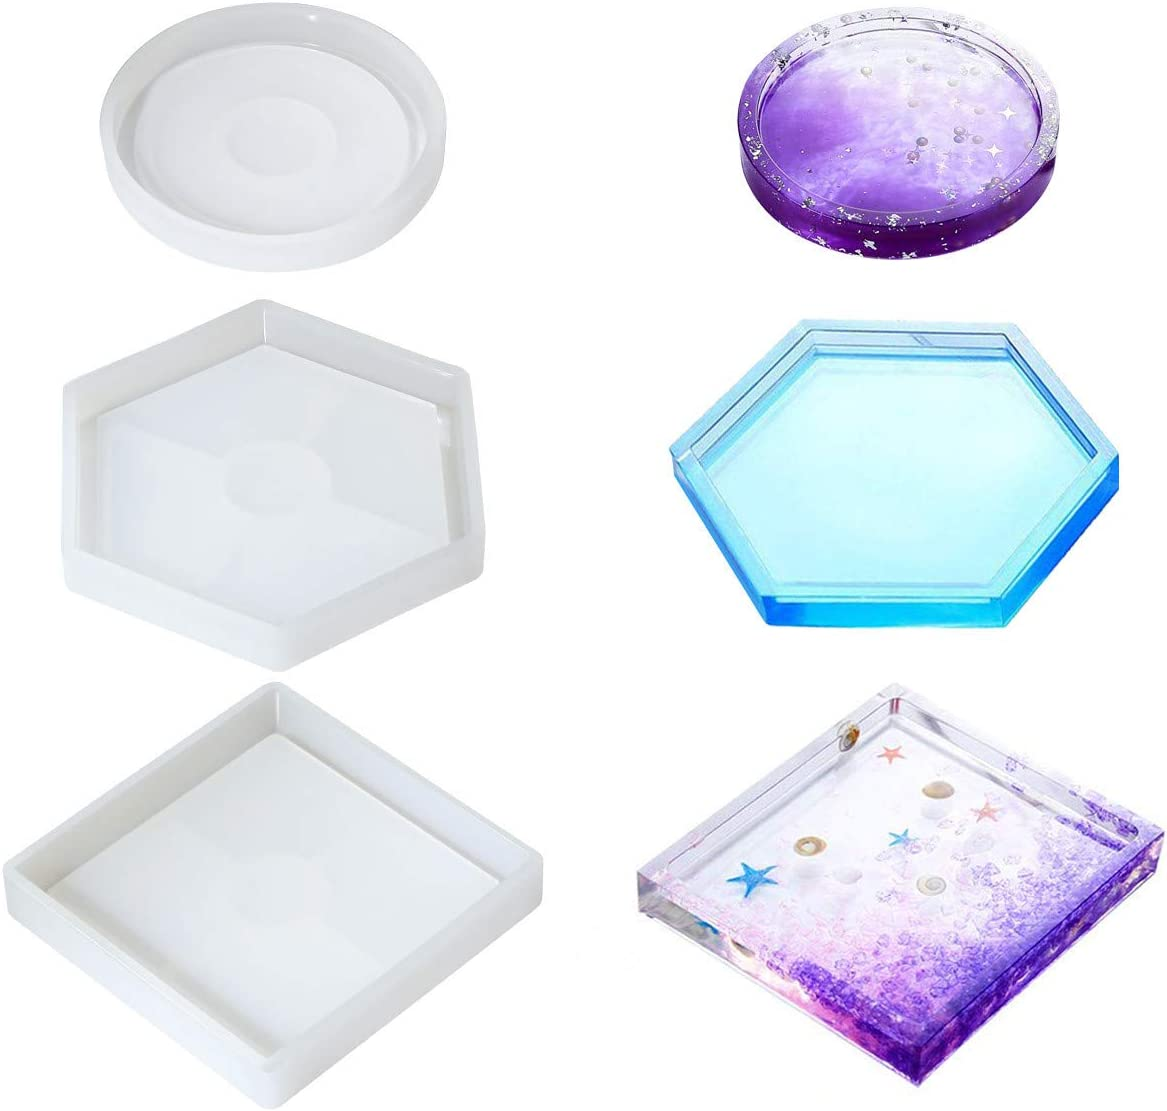 SSEE Square Round Ashtray Coaster Flexible Silicone Tray Mold Epoxy Resin Craft Clay Resin Molds Plaster Mold 1